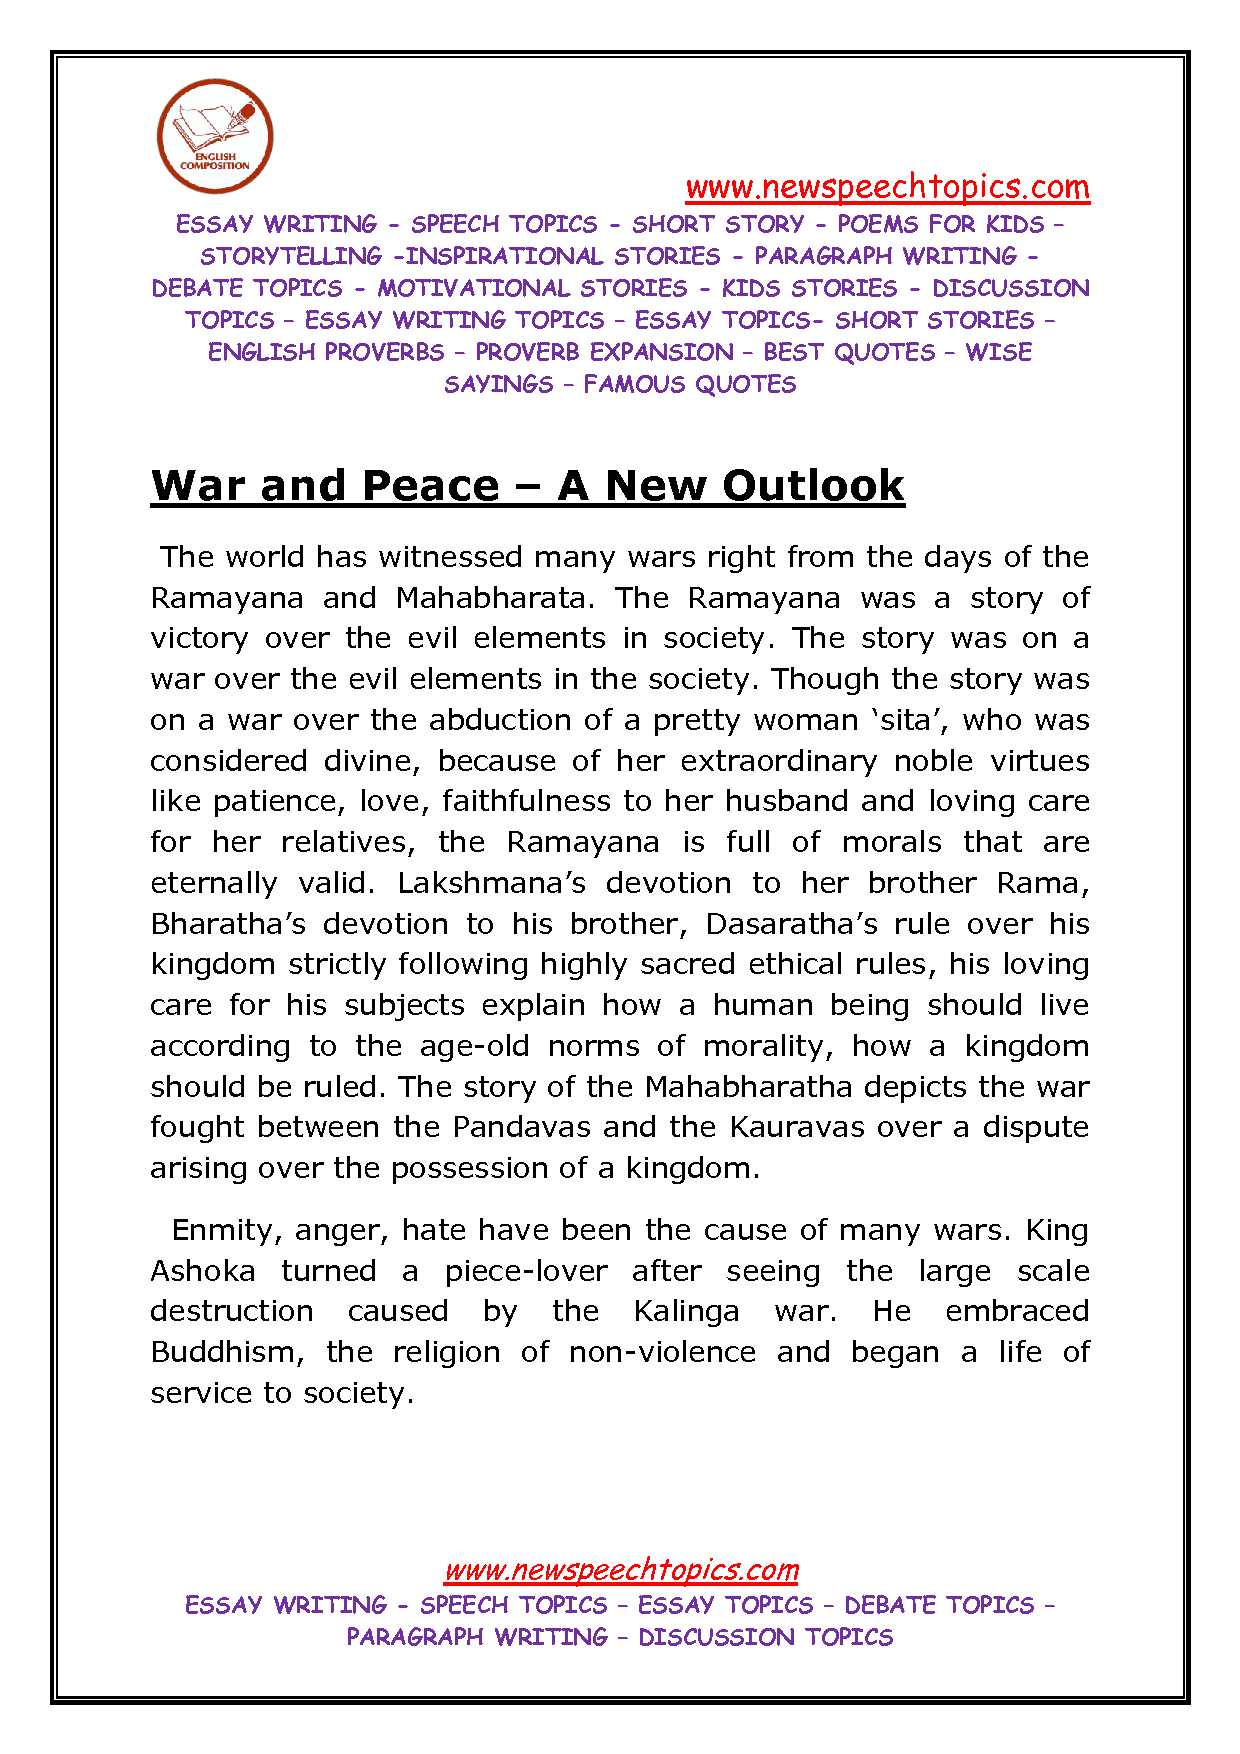 peace essay for kids 91 121 113 106 peace essay for kids